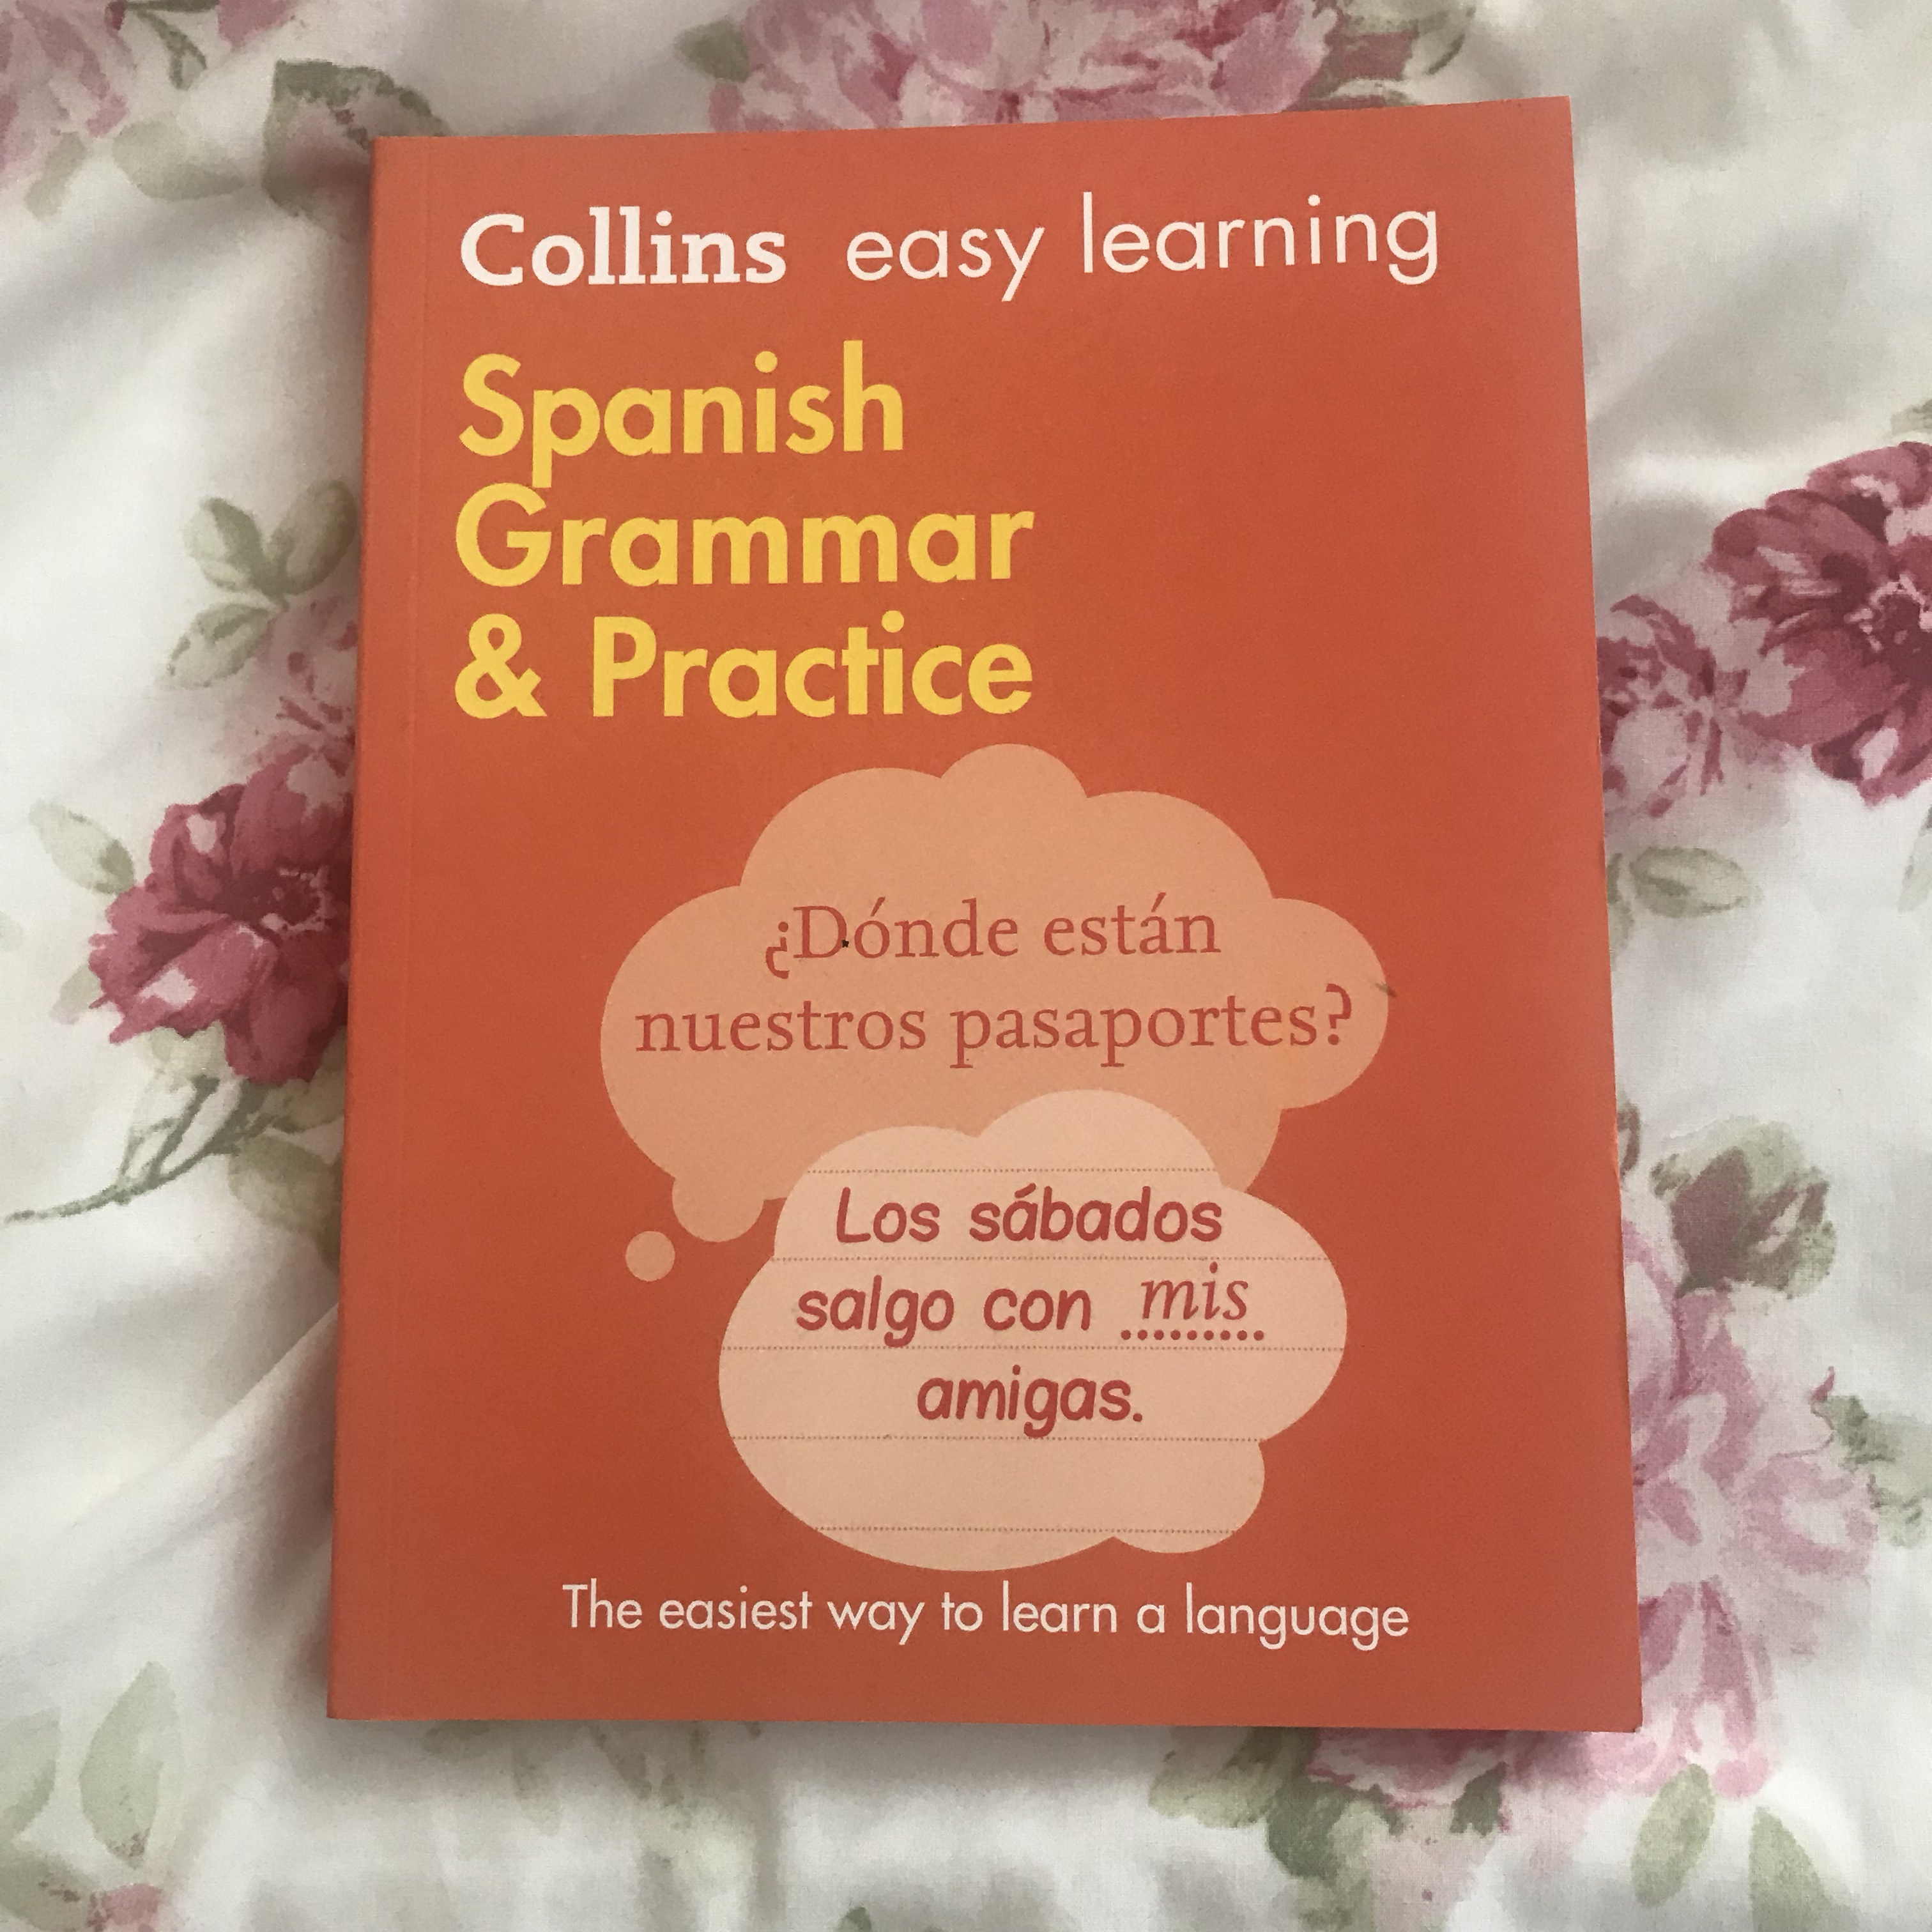 Collins easy learning Spanish Grammar & practice    - Depop